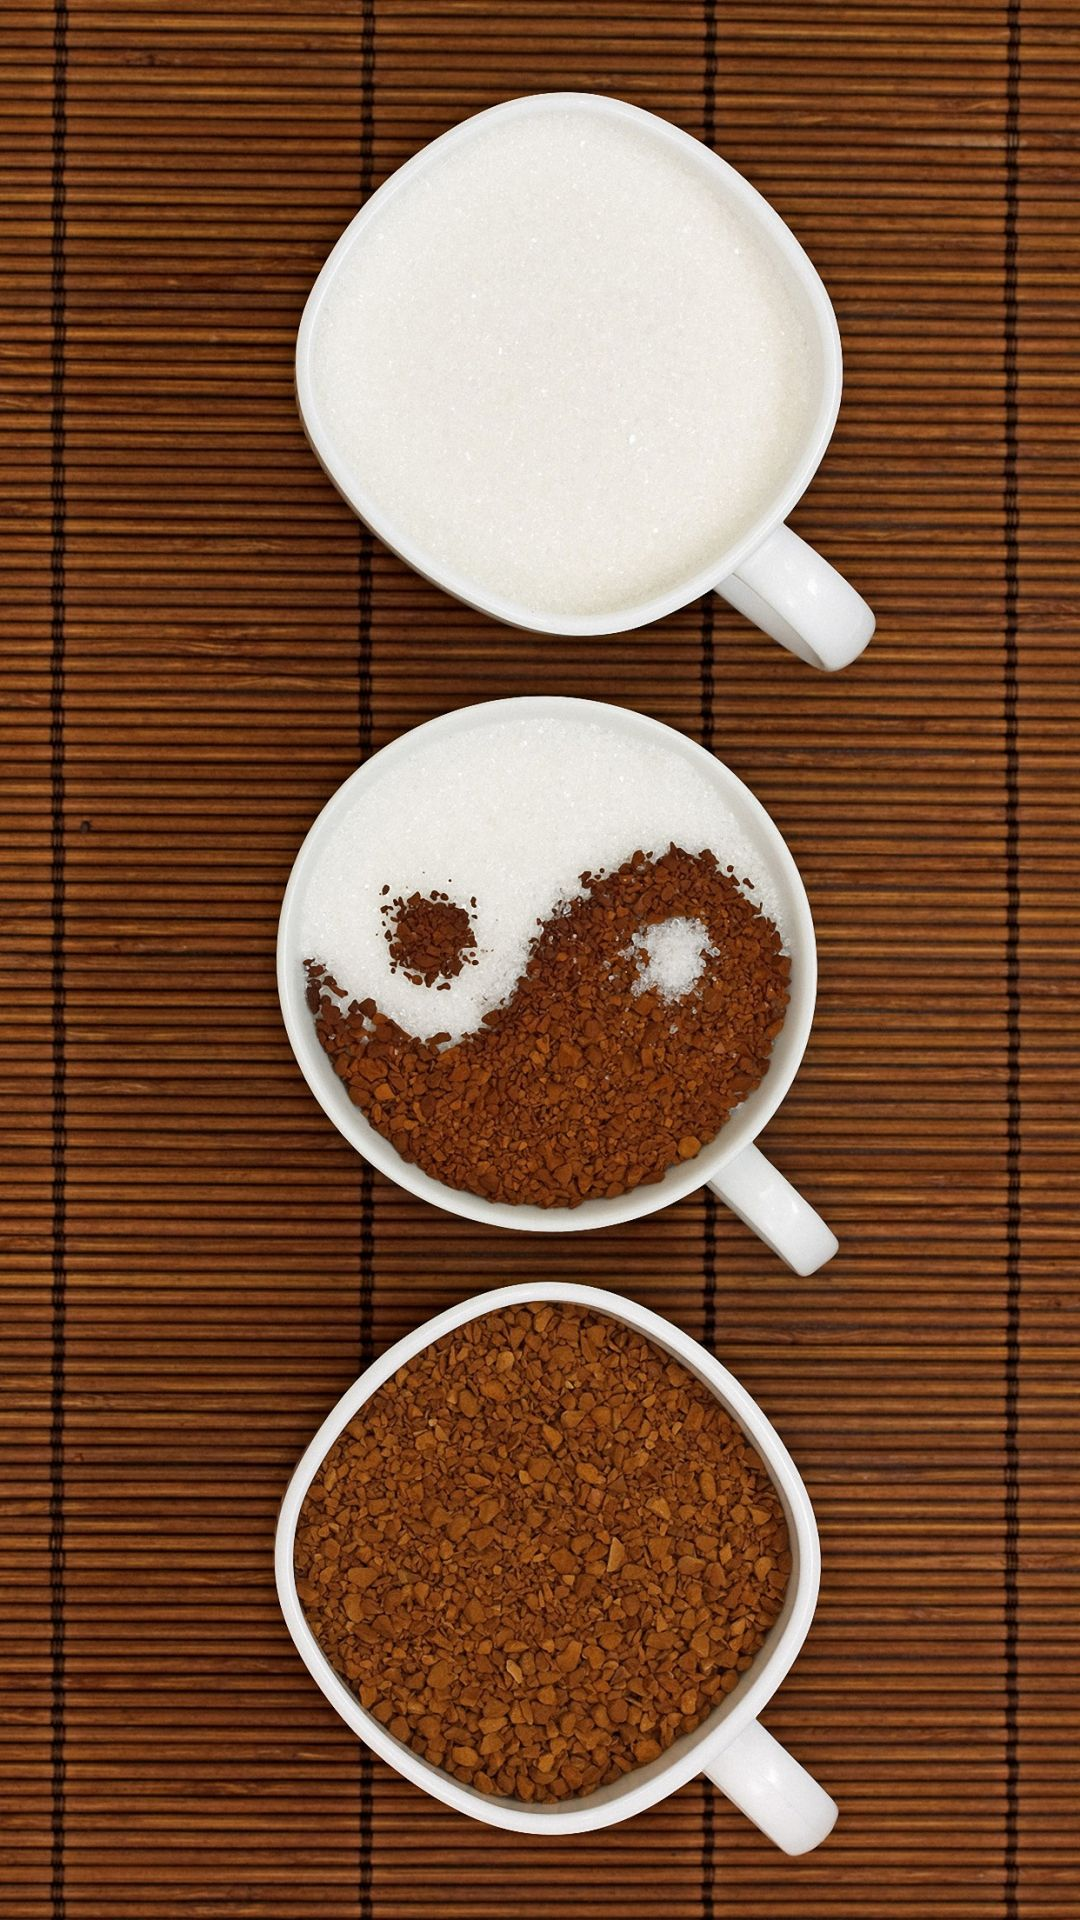 Hd Cute Yin Yang Coffee Iphone 6 6s Plus Wallpapers Cute Mobile